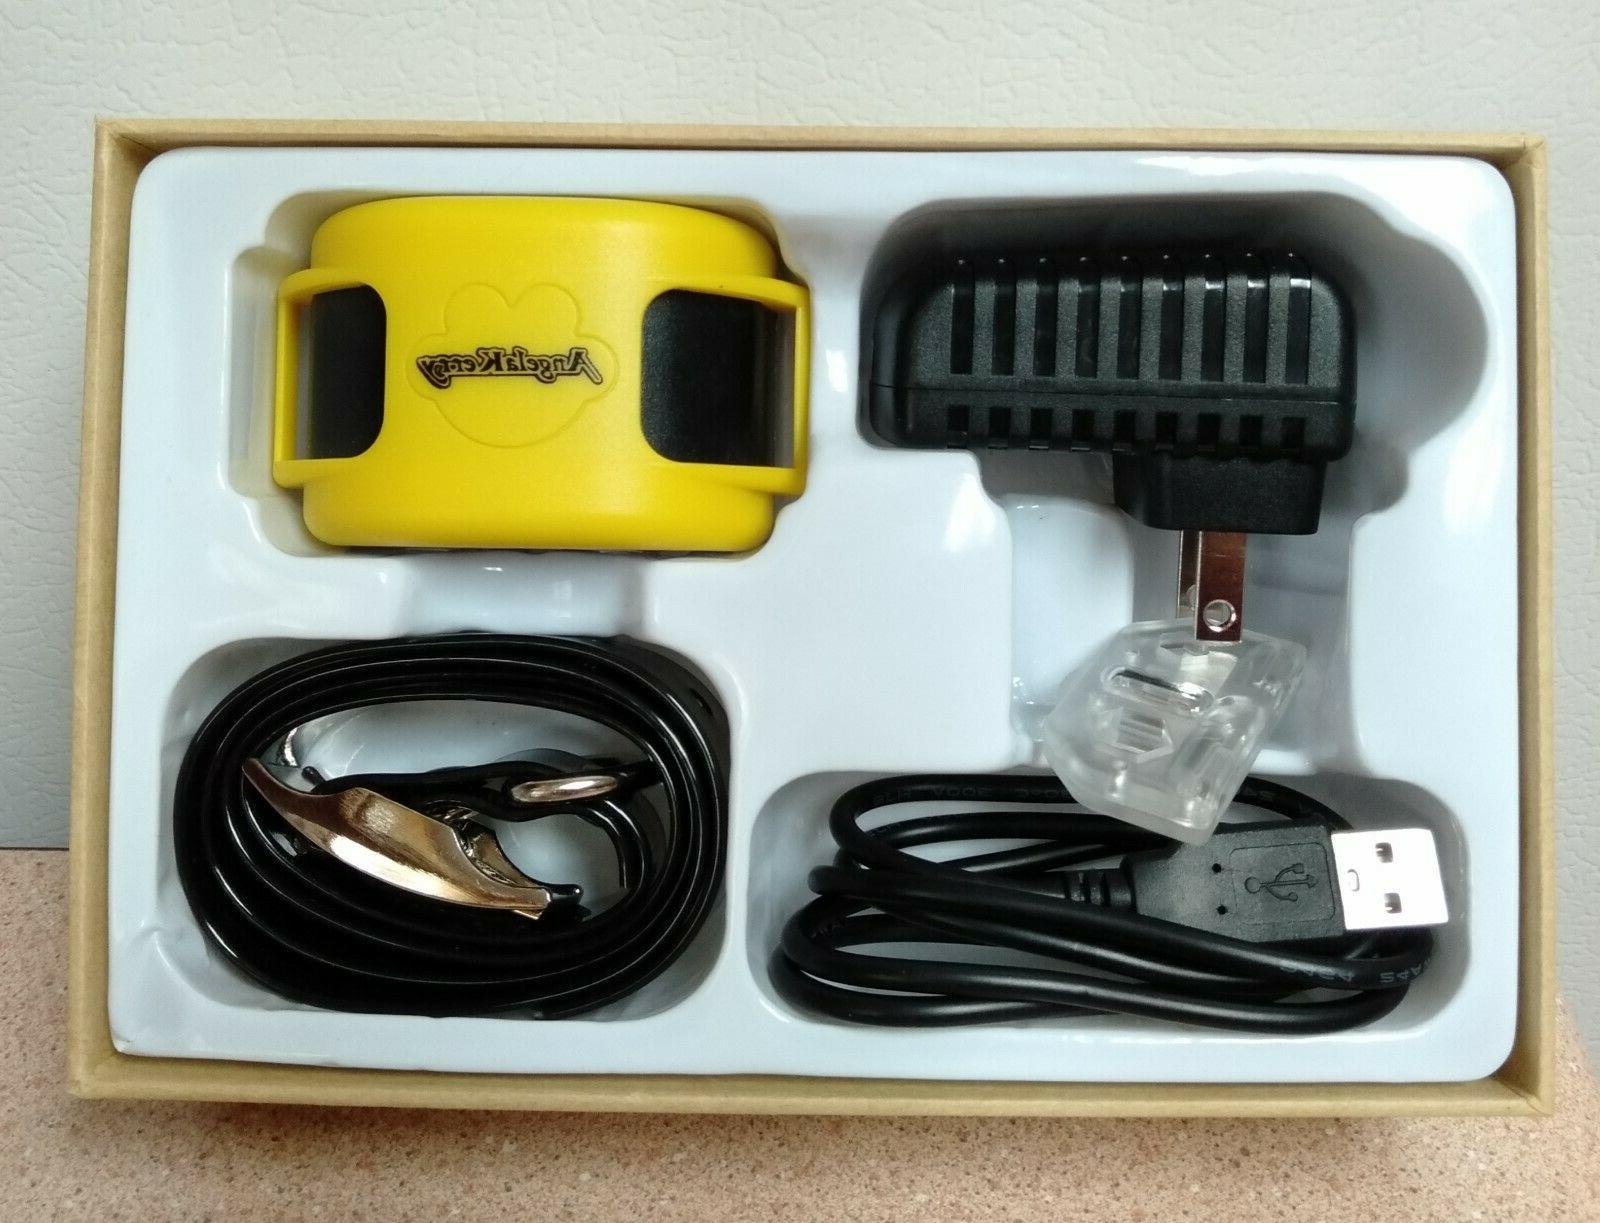 gps wireless electronic pet fencing system 800m